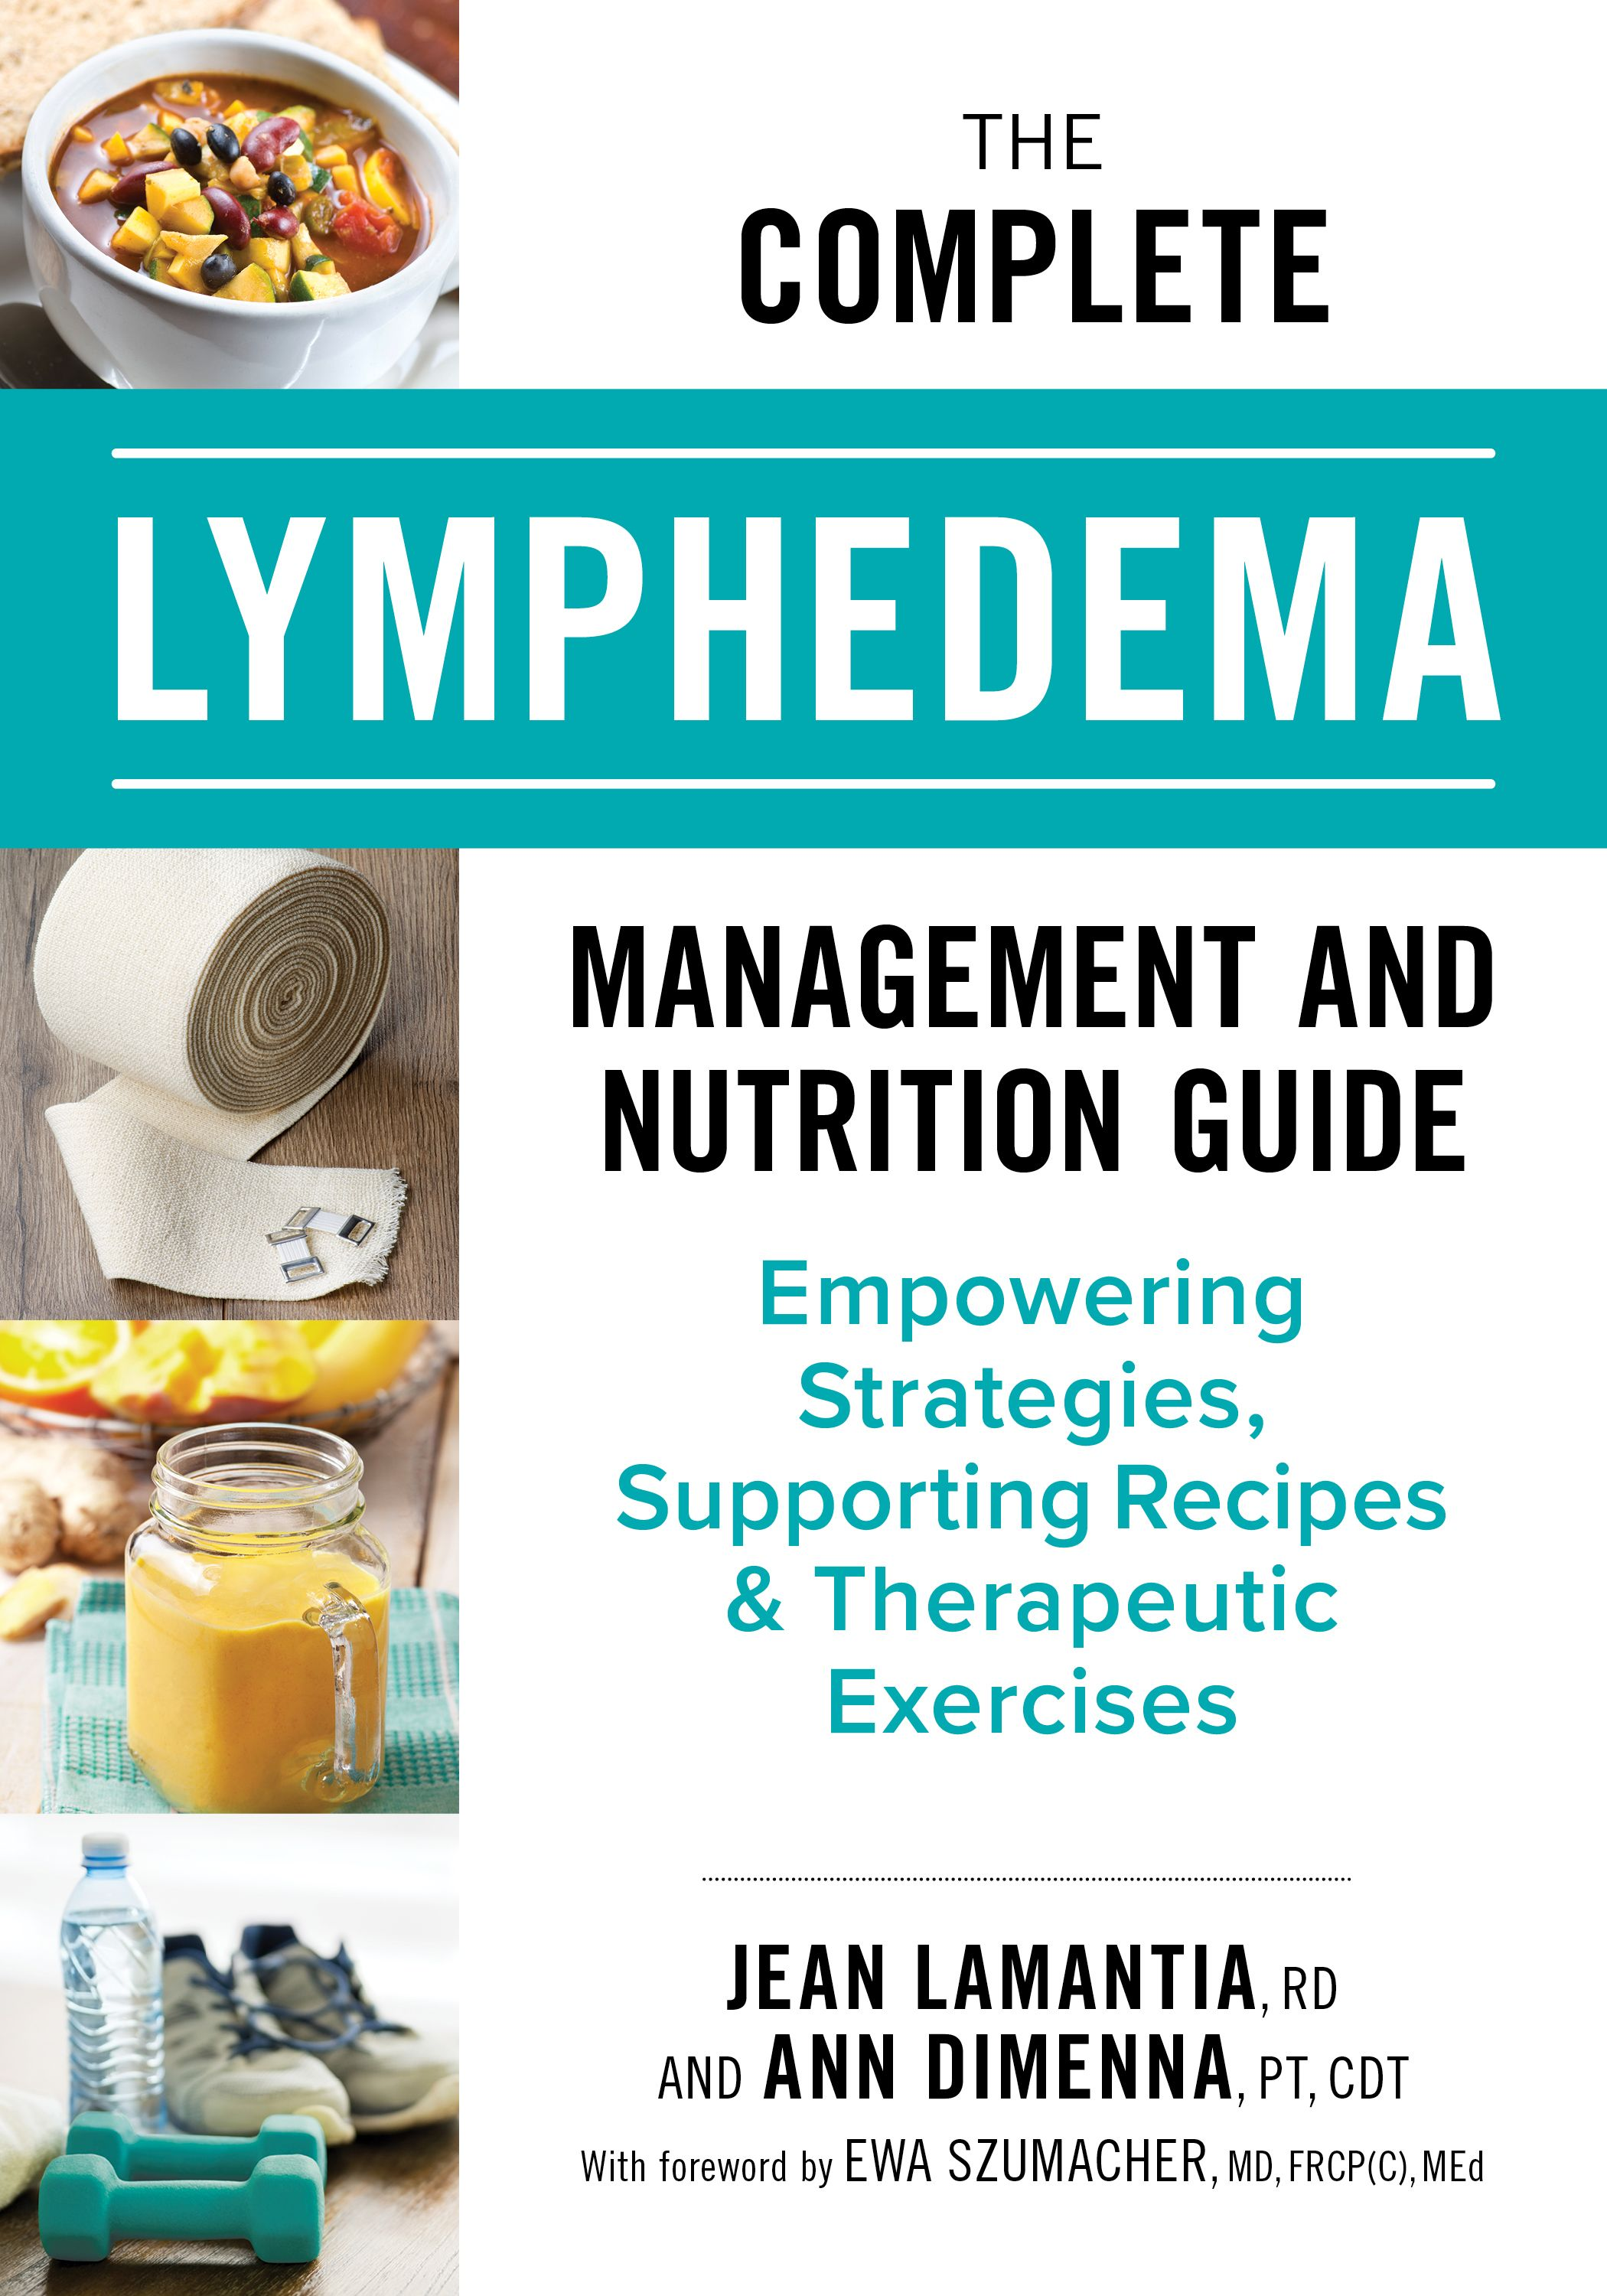 Lymphedema_Cover_promo.jpg